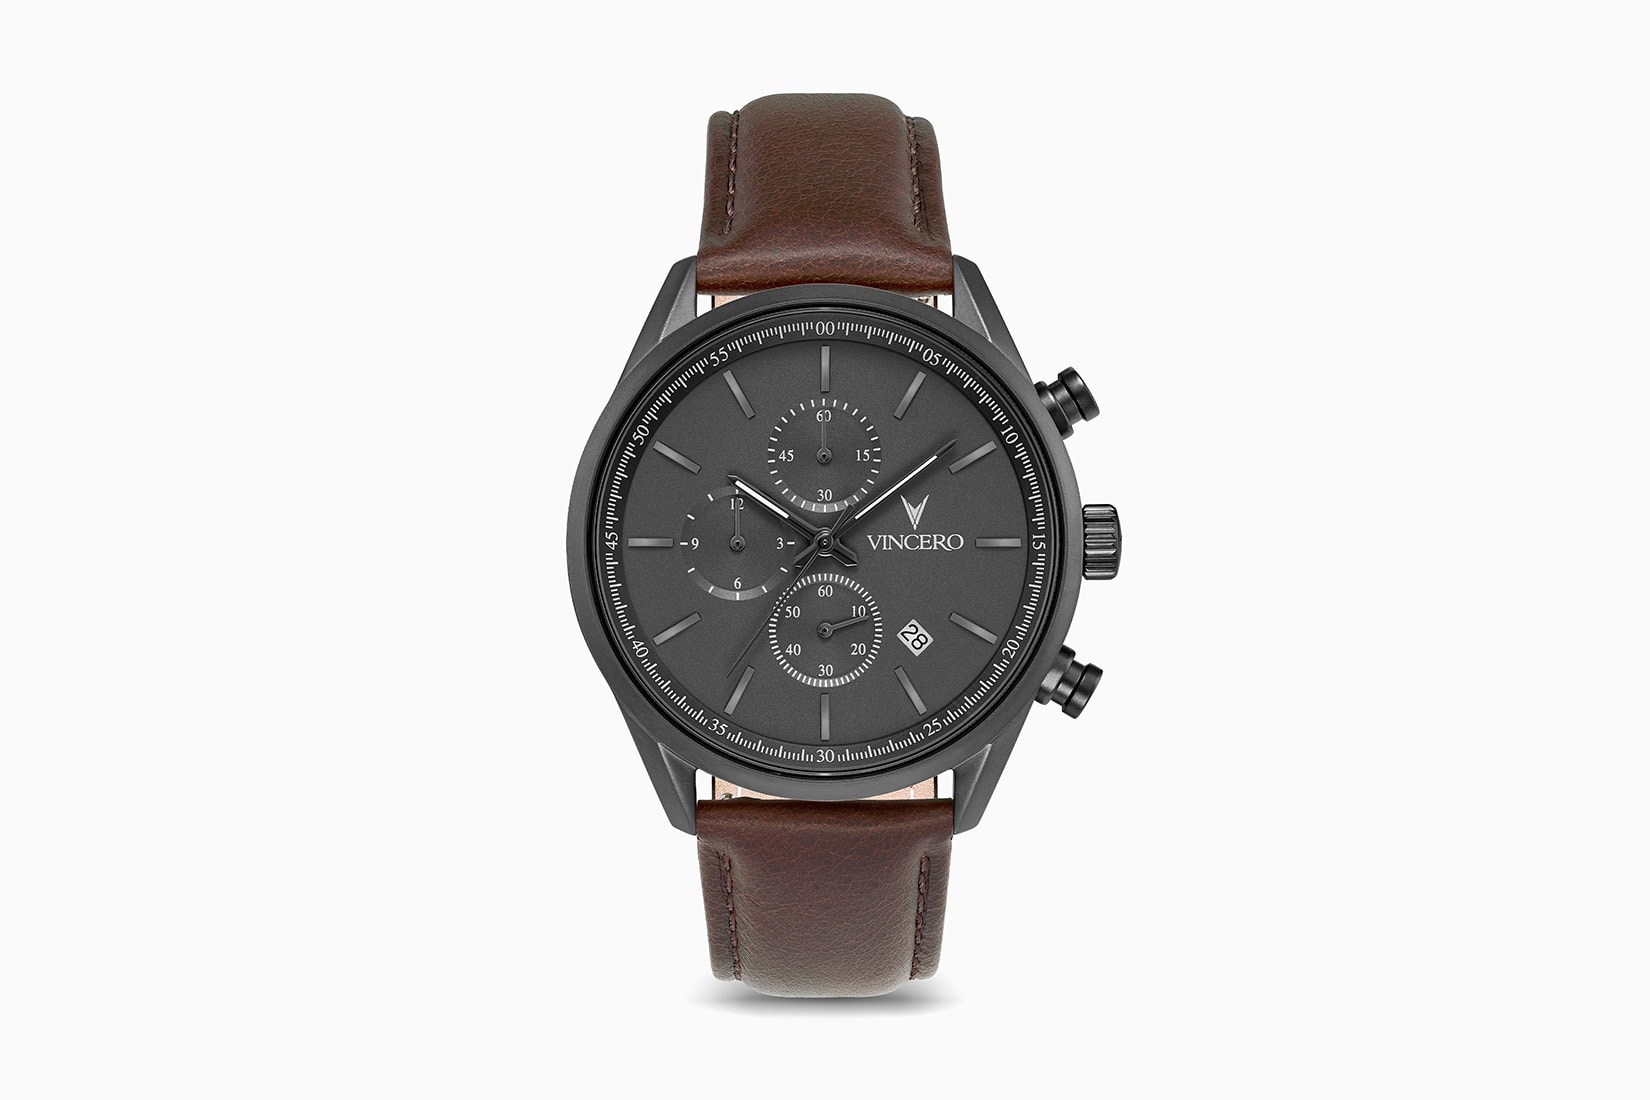 Vincero chrono watches review - Luxe Digital